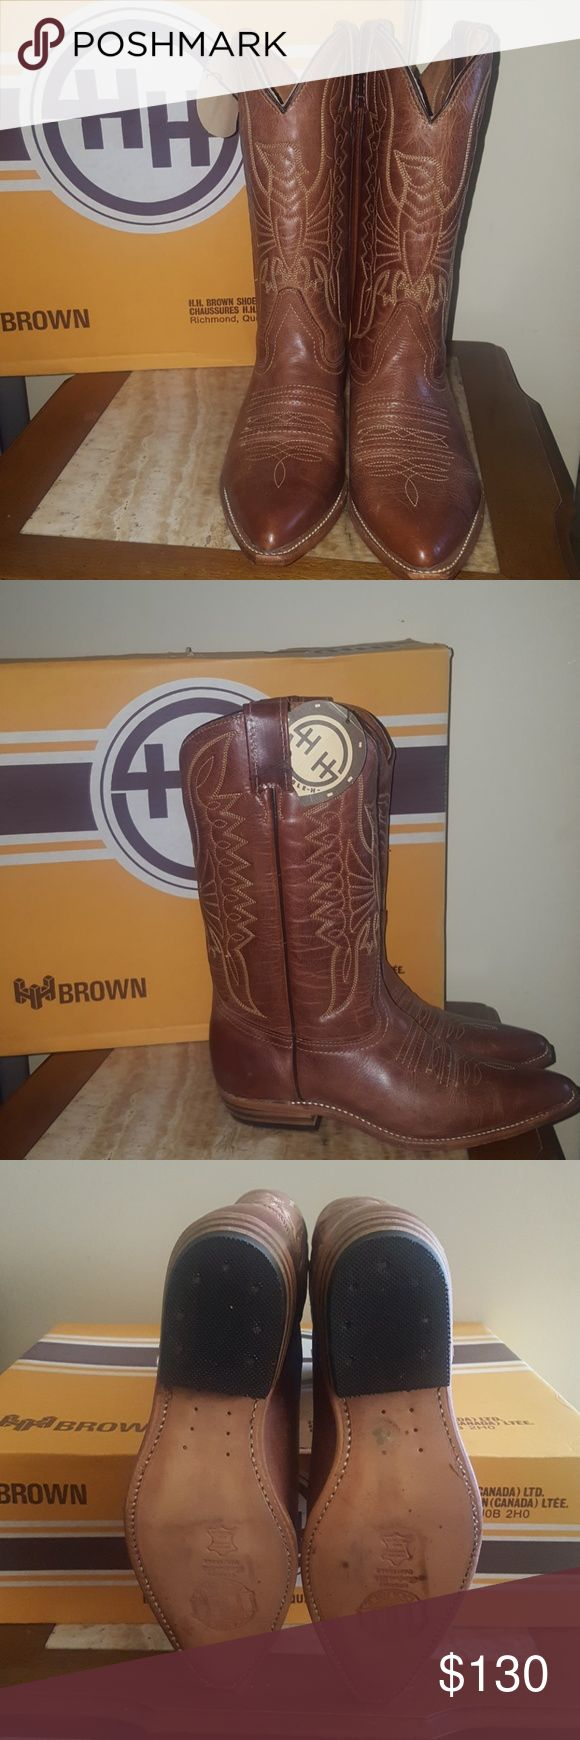 HH Brown Ladies Cowboy Boots **PRICE DROP** FINAL PRICE!   BRAND NEW never worn ladies leather boots. NO OFFERS OR TRADES! HH Brown Shoes Combat & Moto Boots